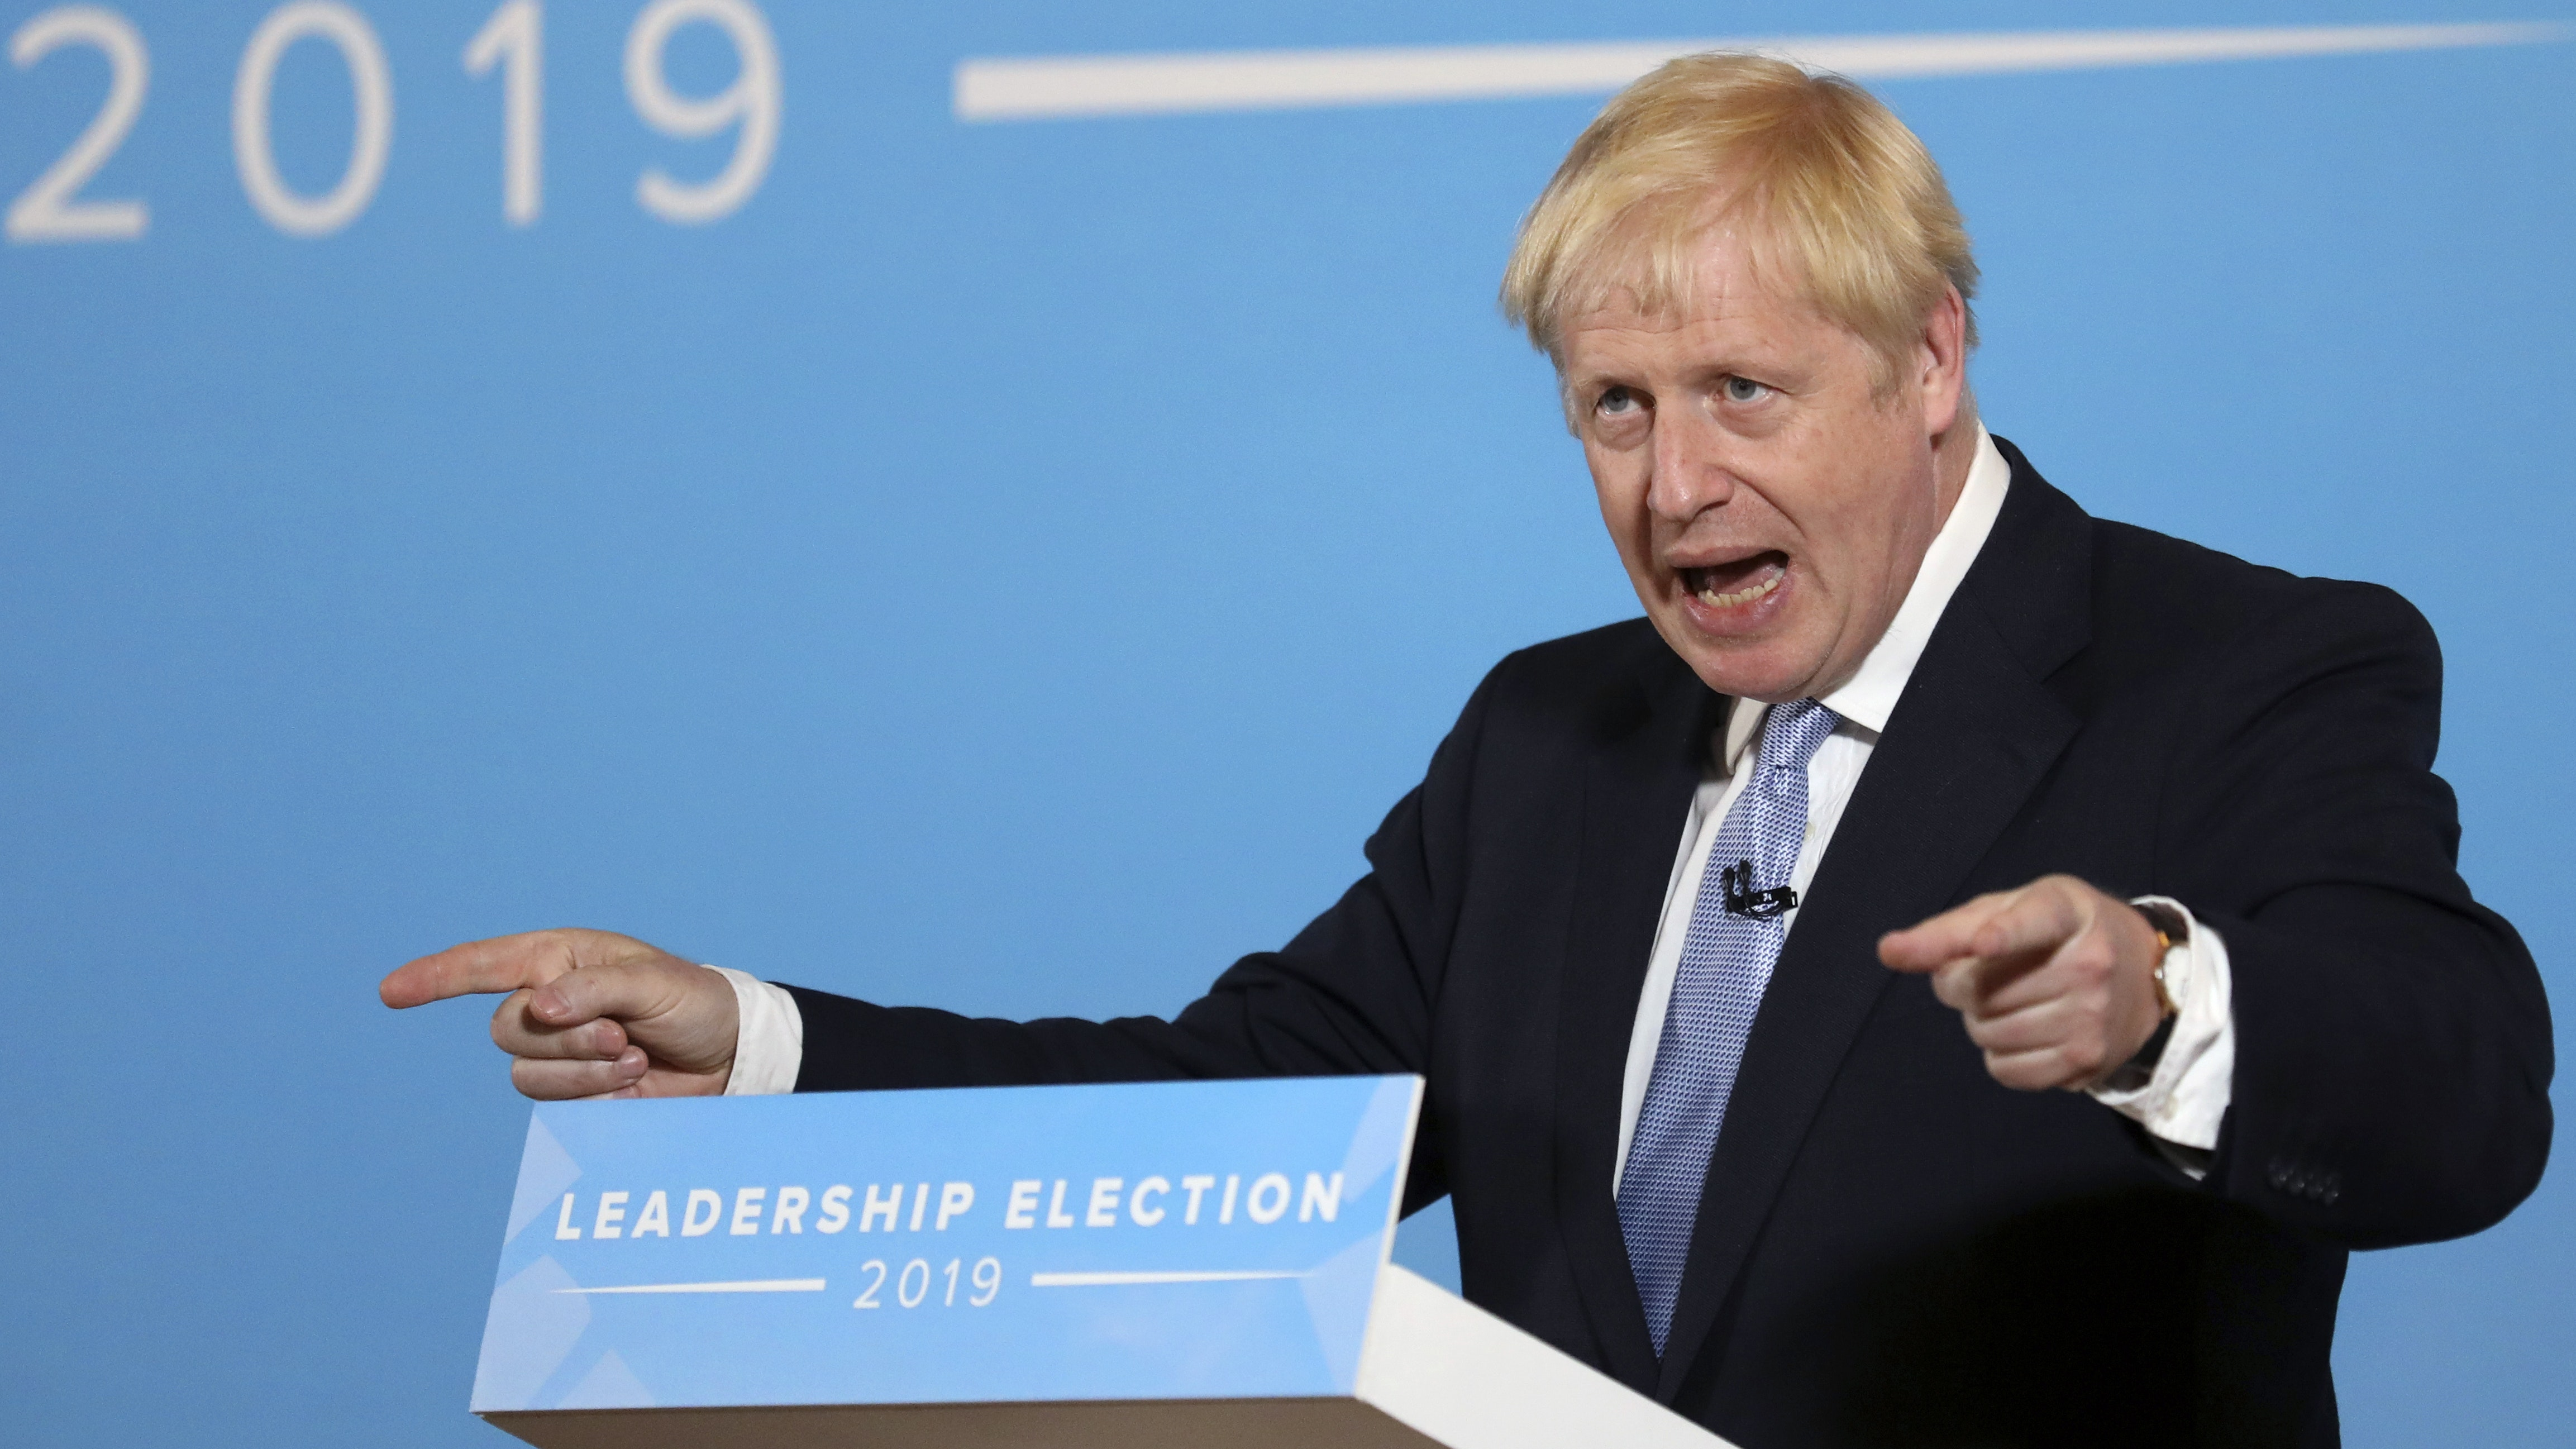 As Britain's PM, Johnson vows to launch review of 'sin taxes'